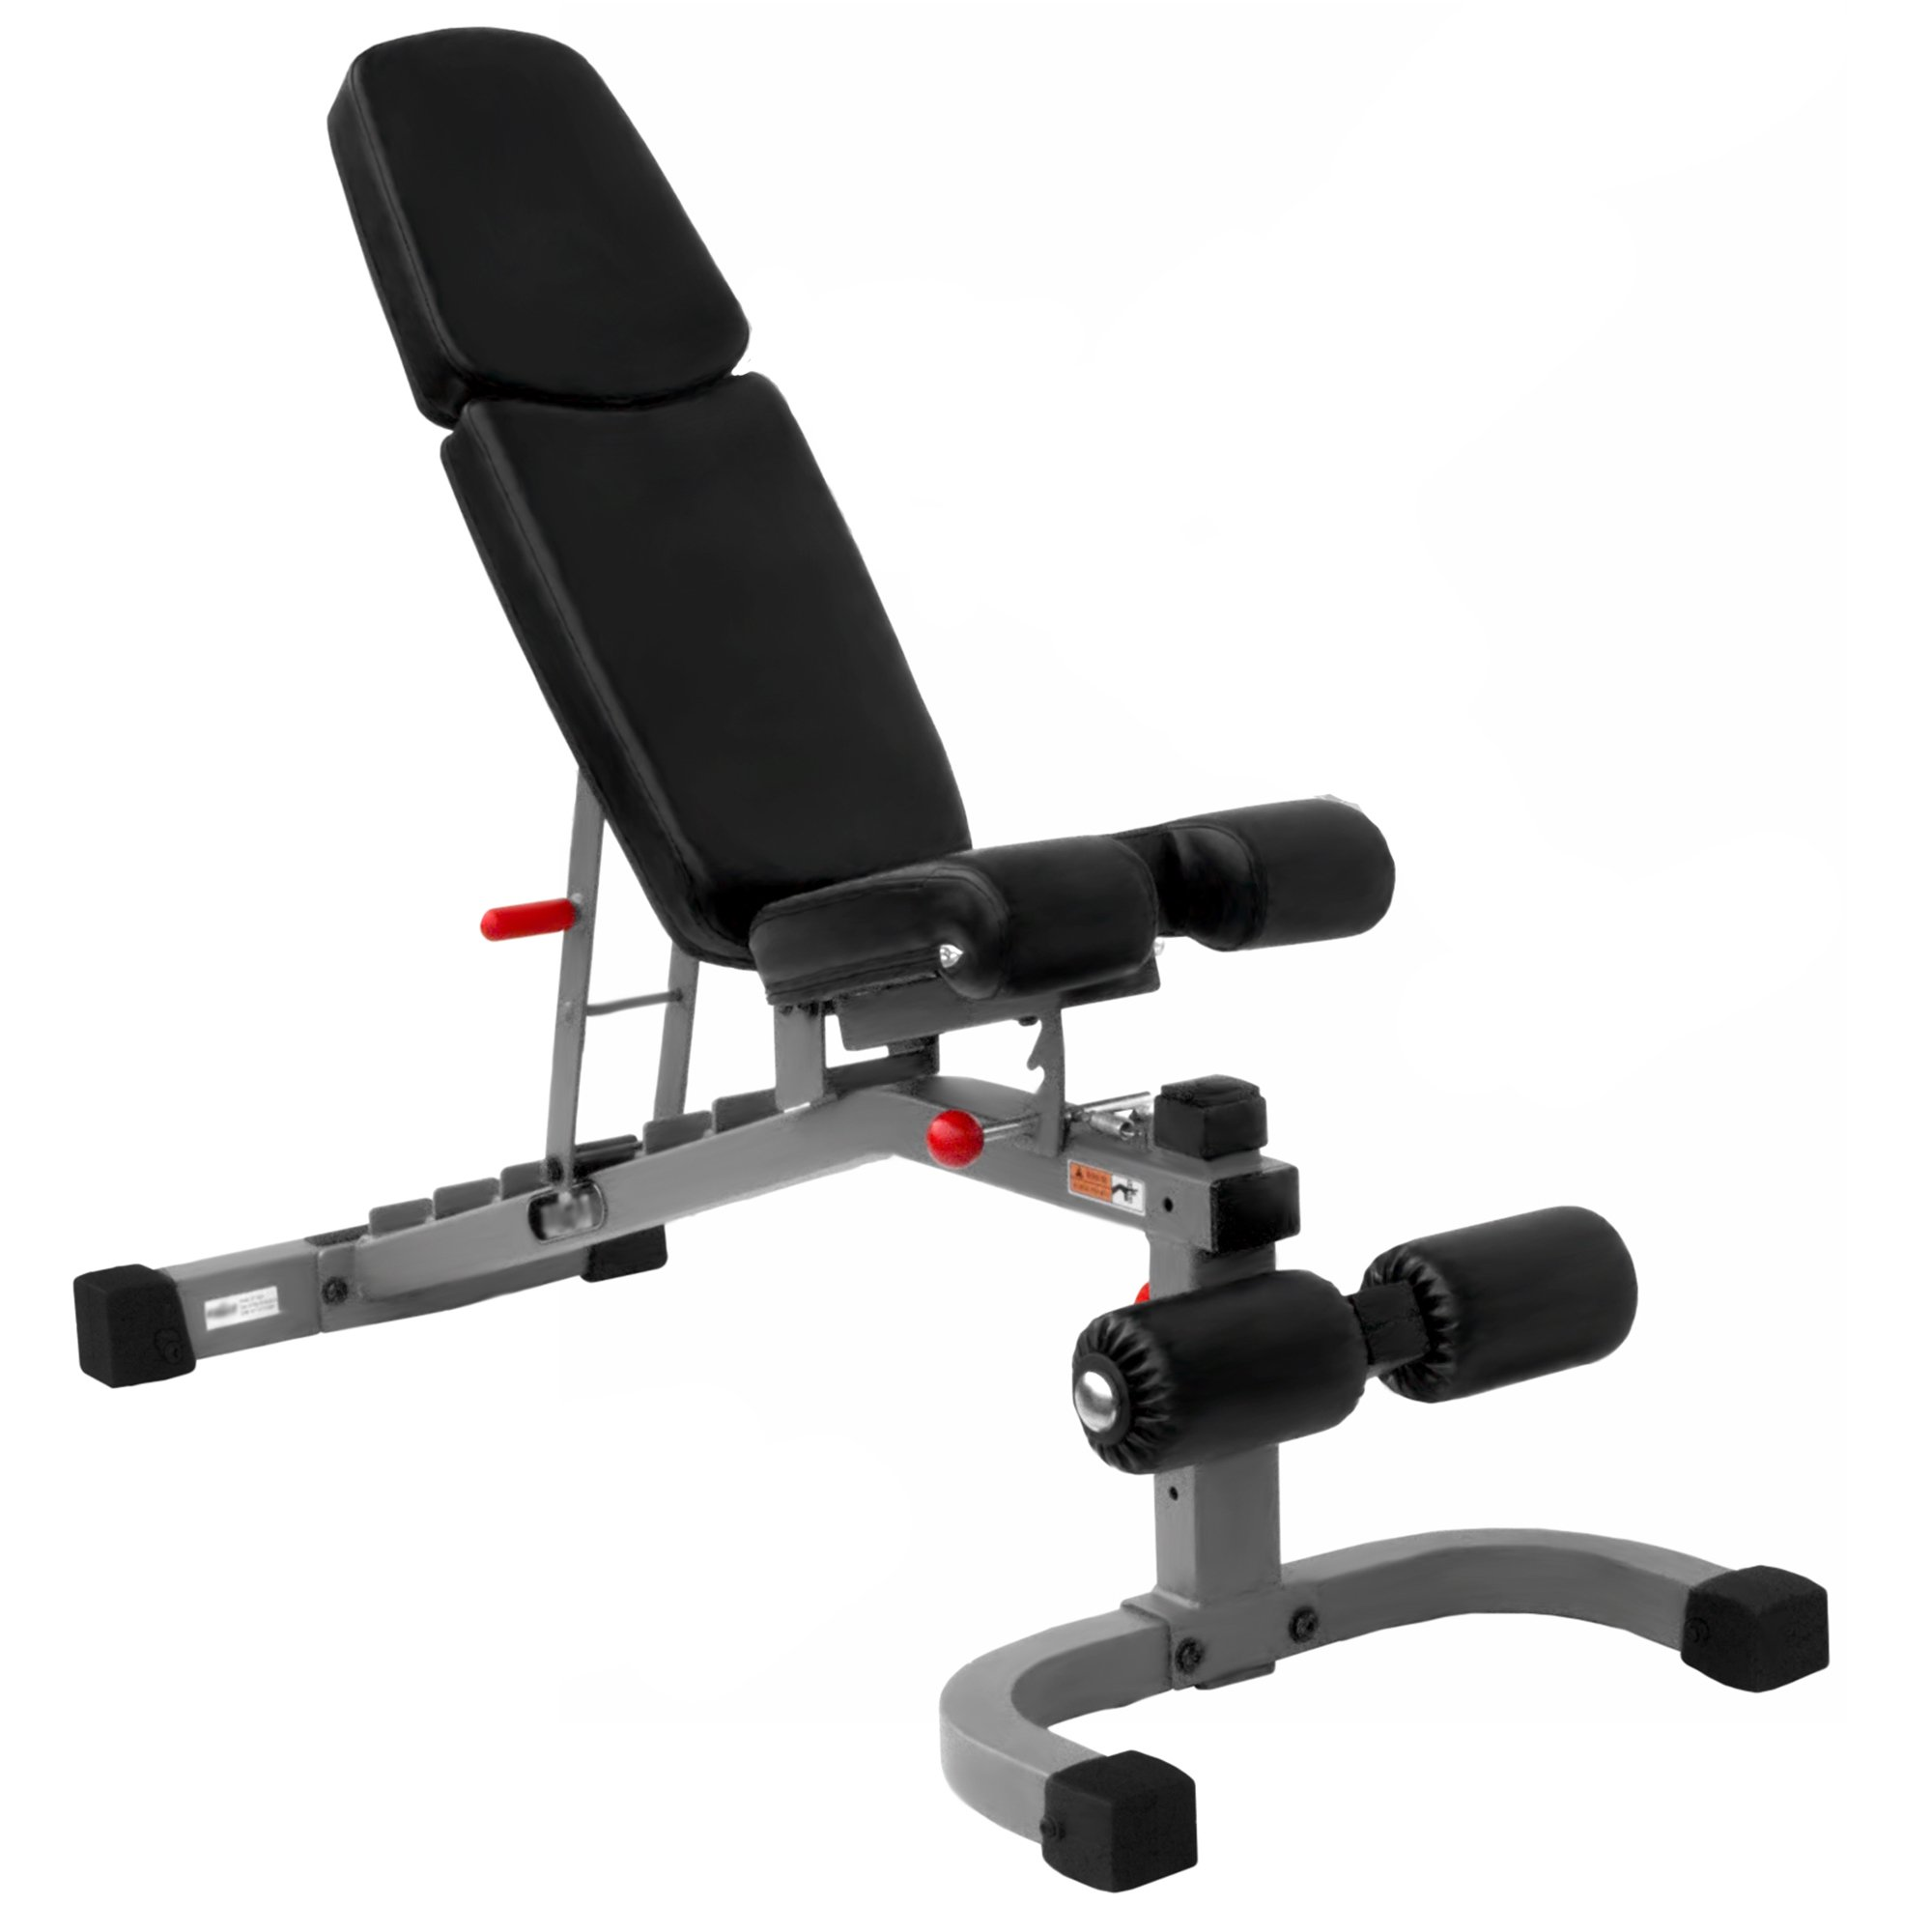 benches tibs weight incline weider product adjustable bench outdoors sports